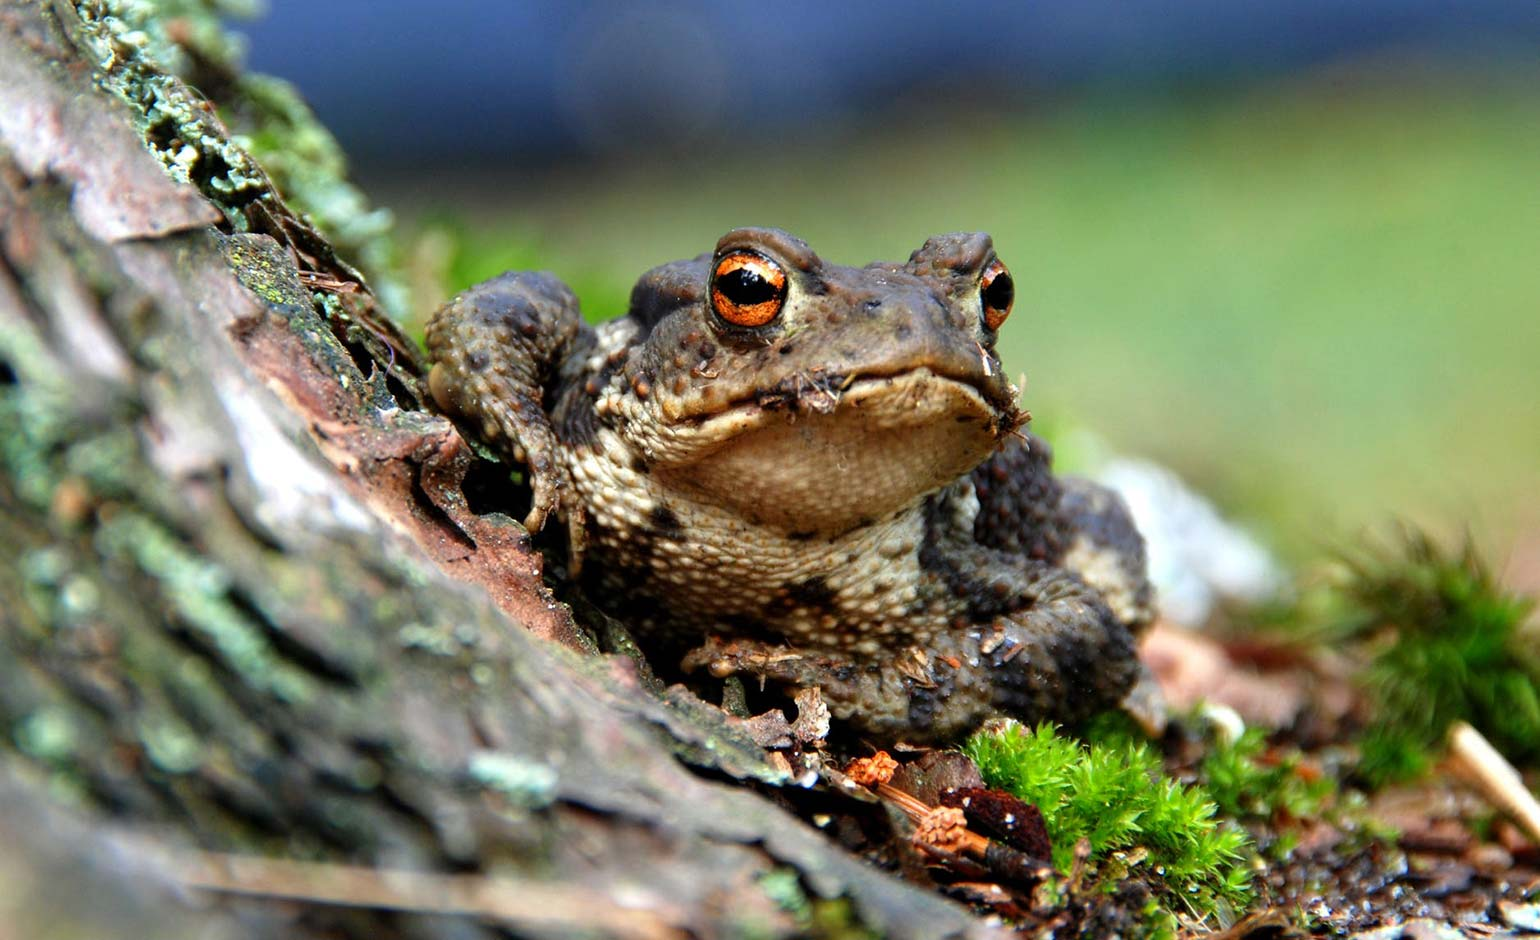 Wildlife conservation charity Froglife set to host Toad Summit in Bath